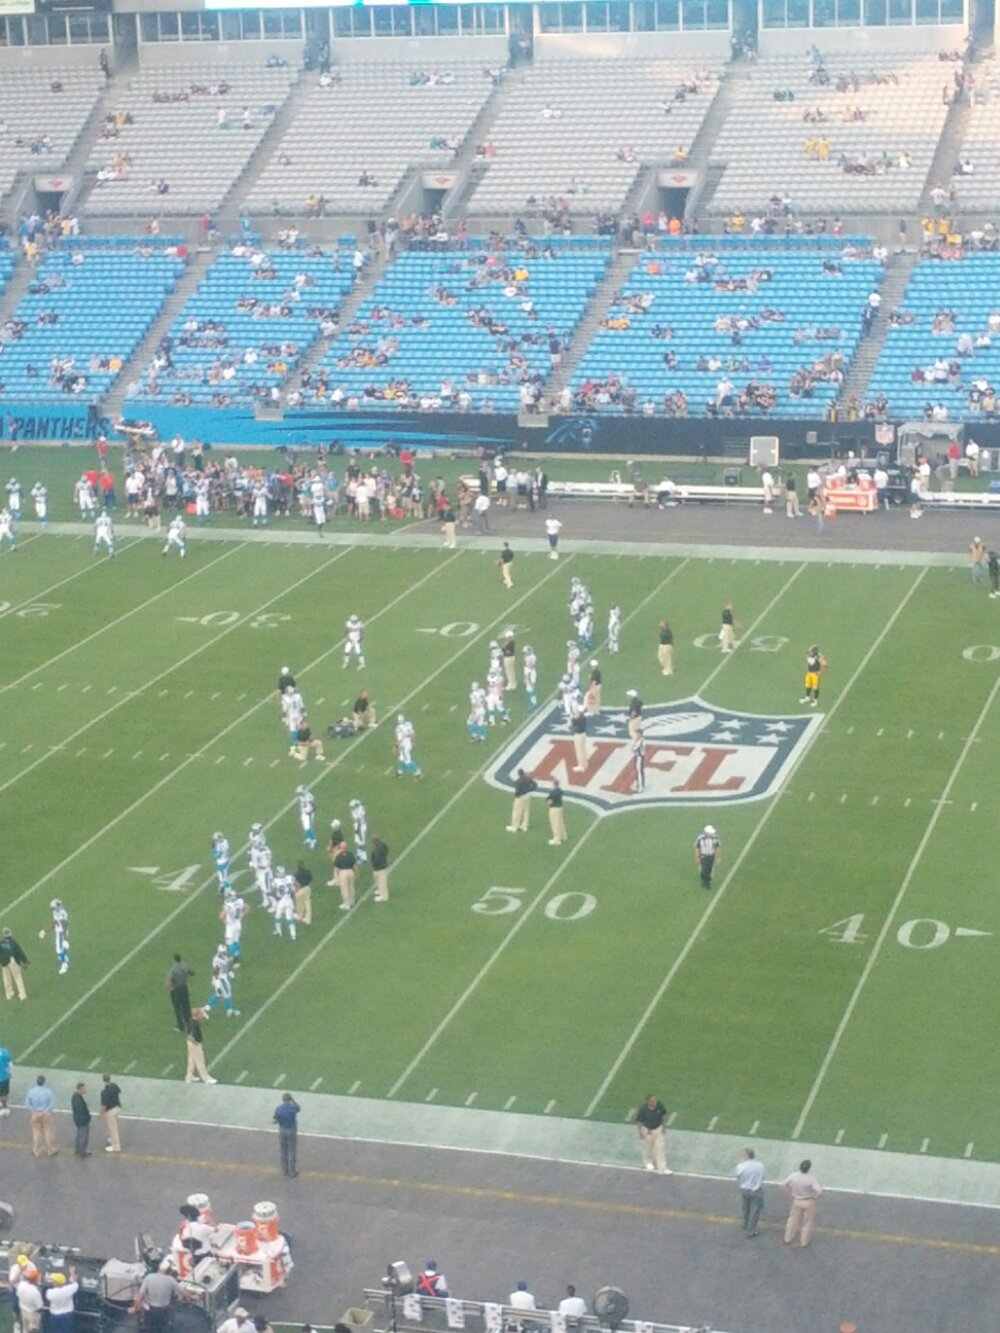 Panthers v. Steelers